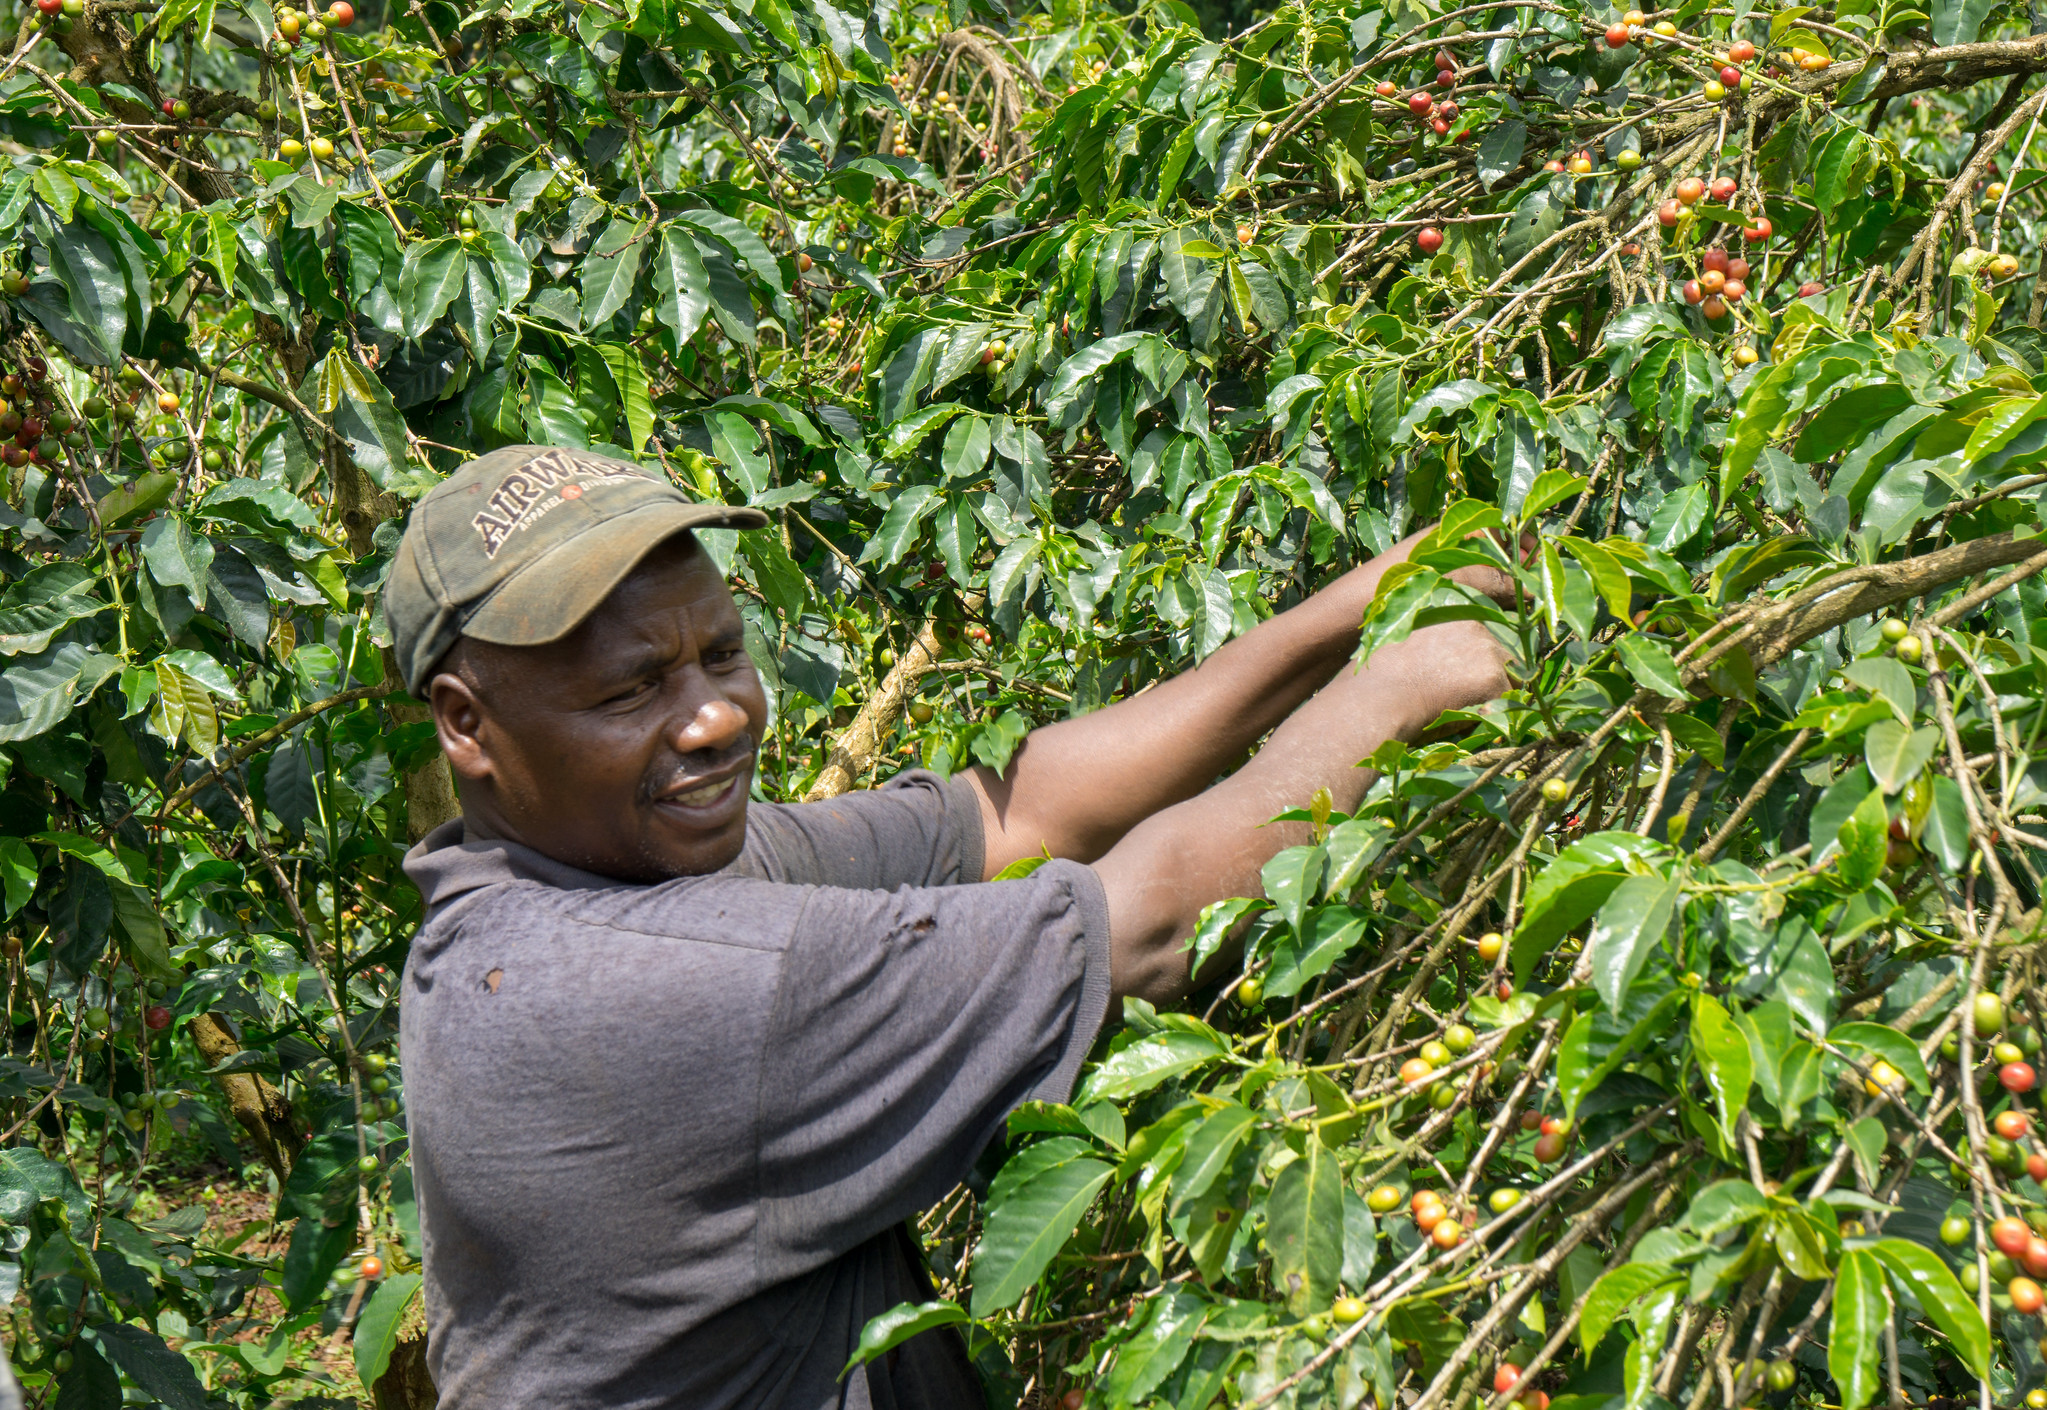 Joseph Ngari was featured in our magazine KAFFE issue 2. This year he's selected as a model farmer to teach others in this region.